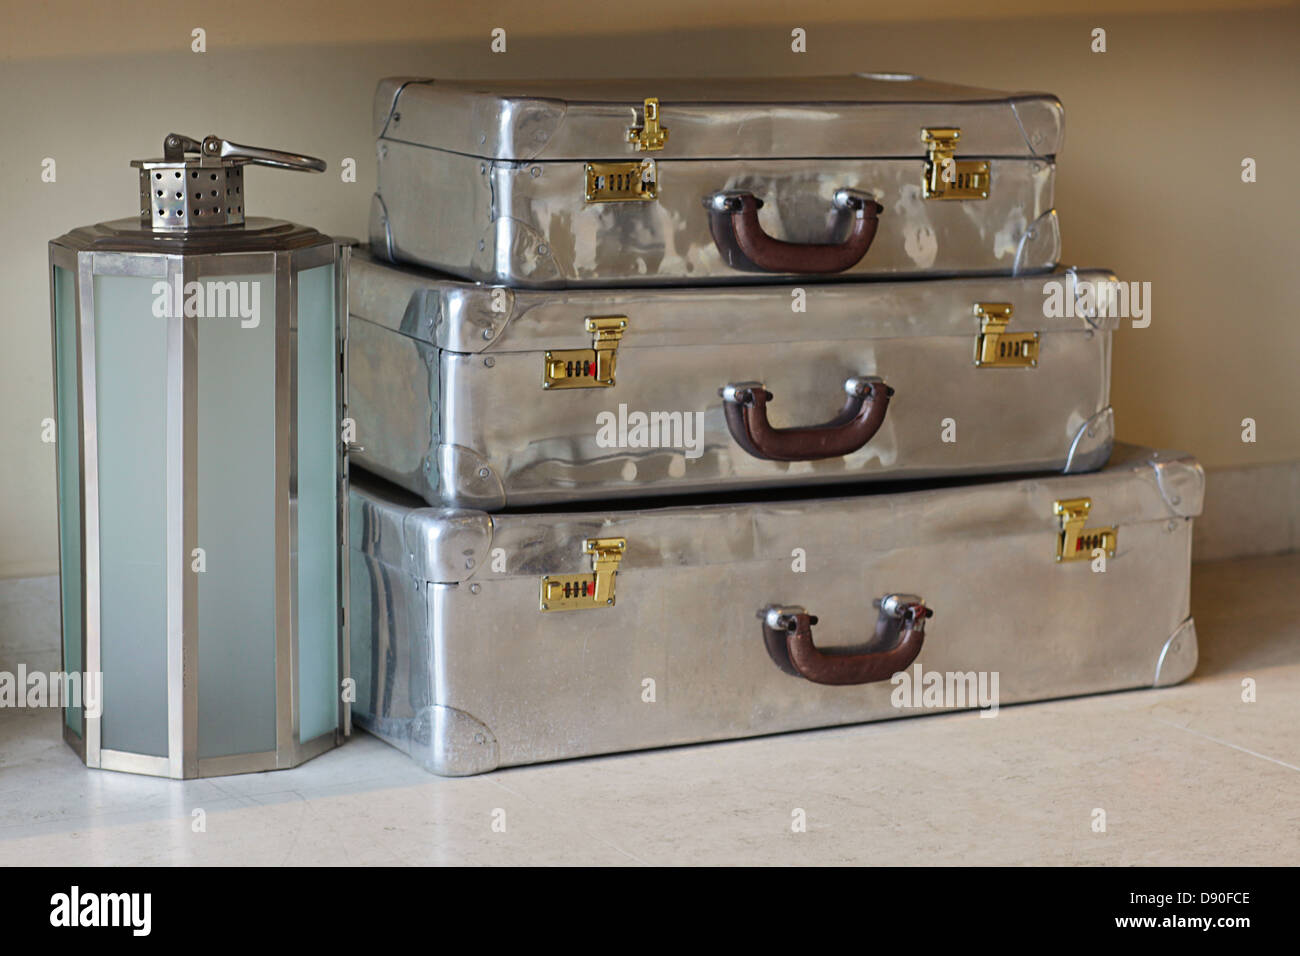 Old fashioned stainless steel suitcases for travel - Stock Image